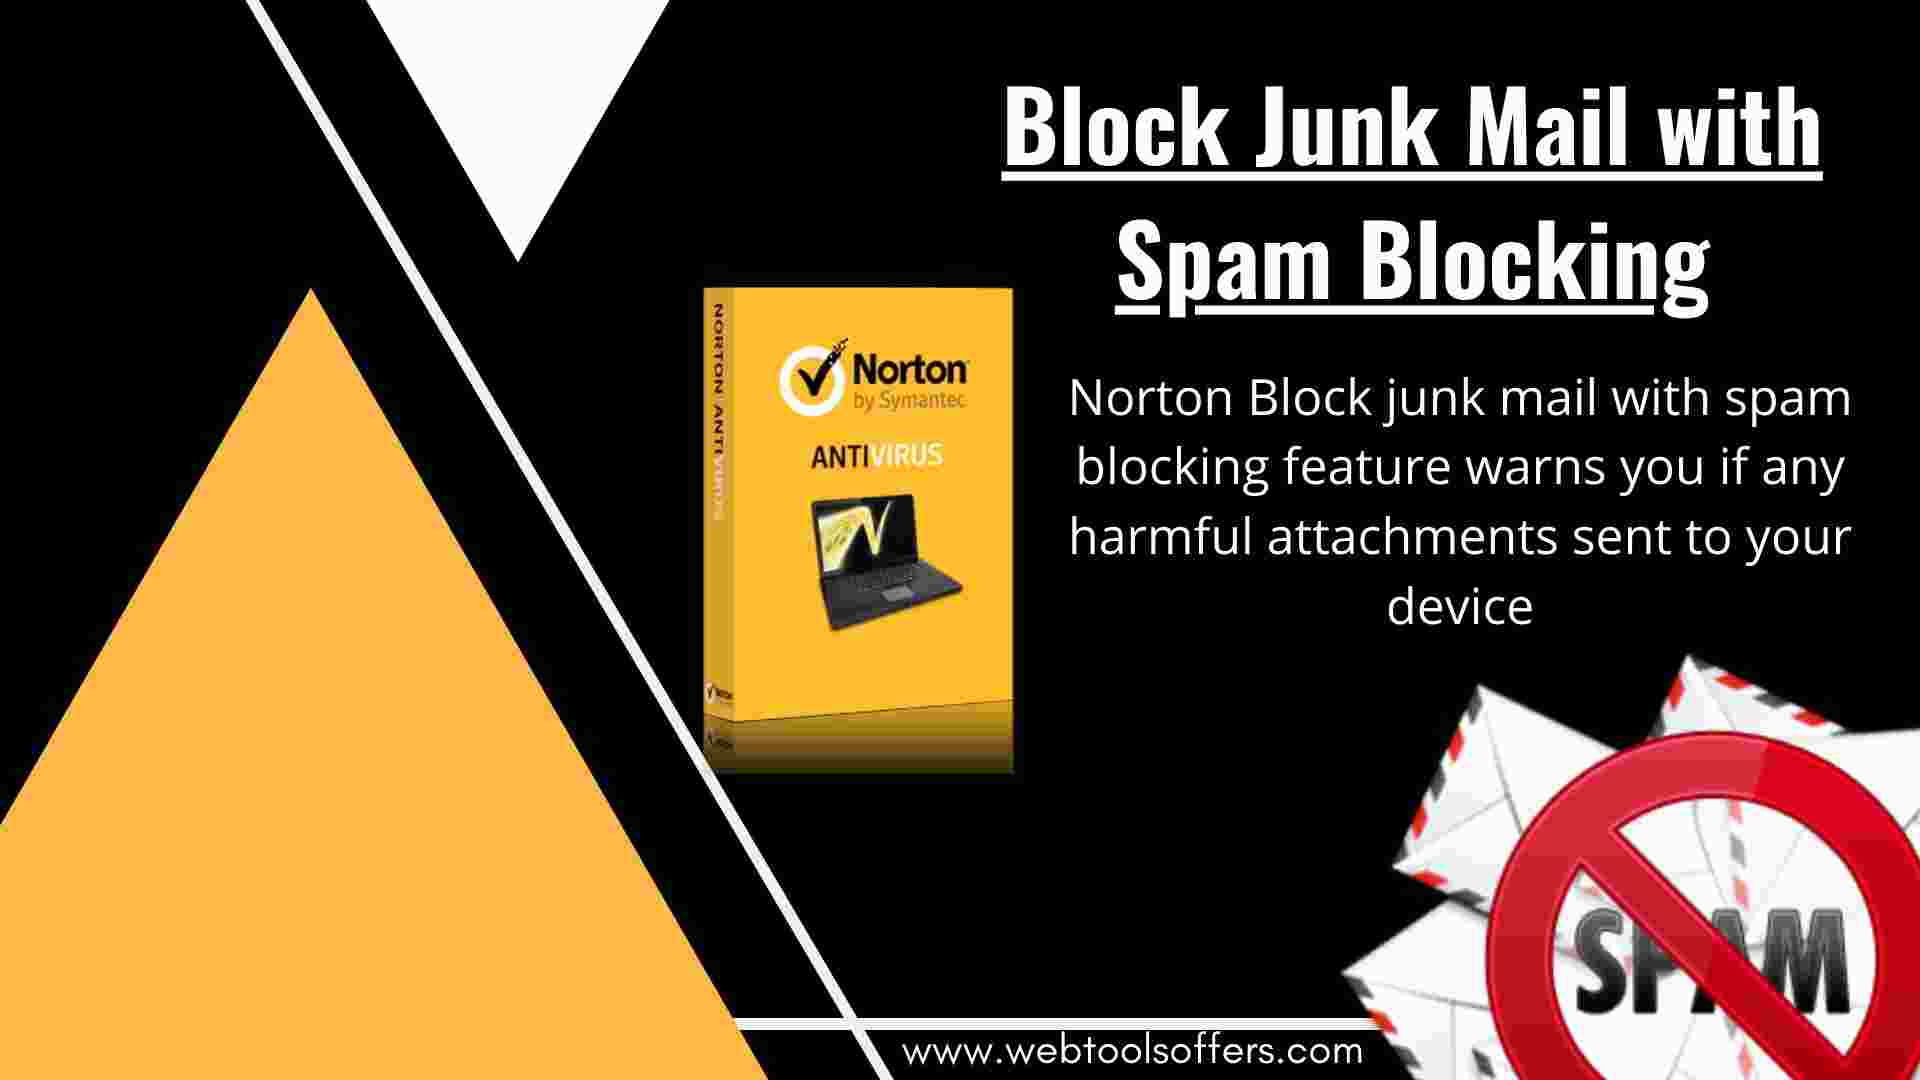 Norton Block Junk Mail